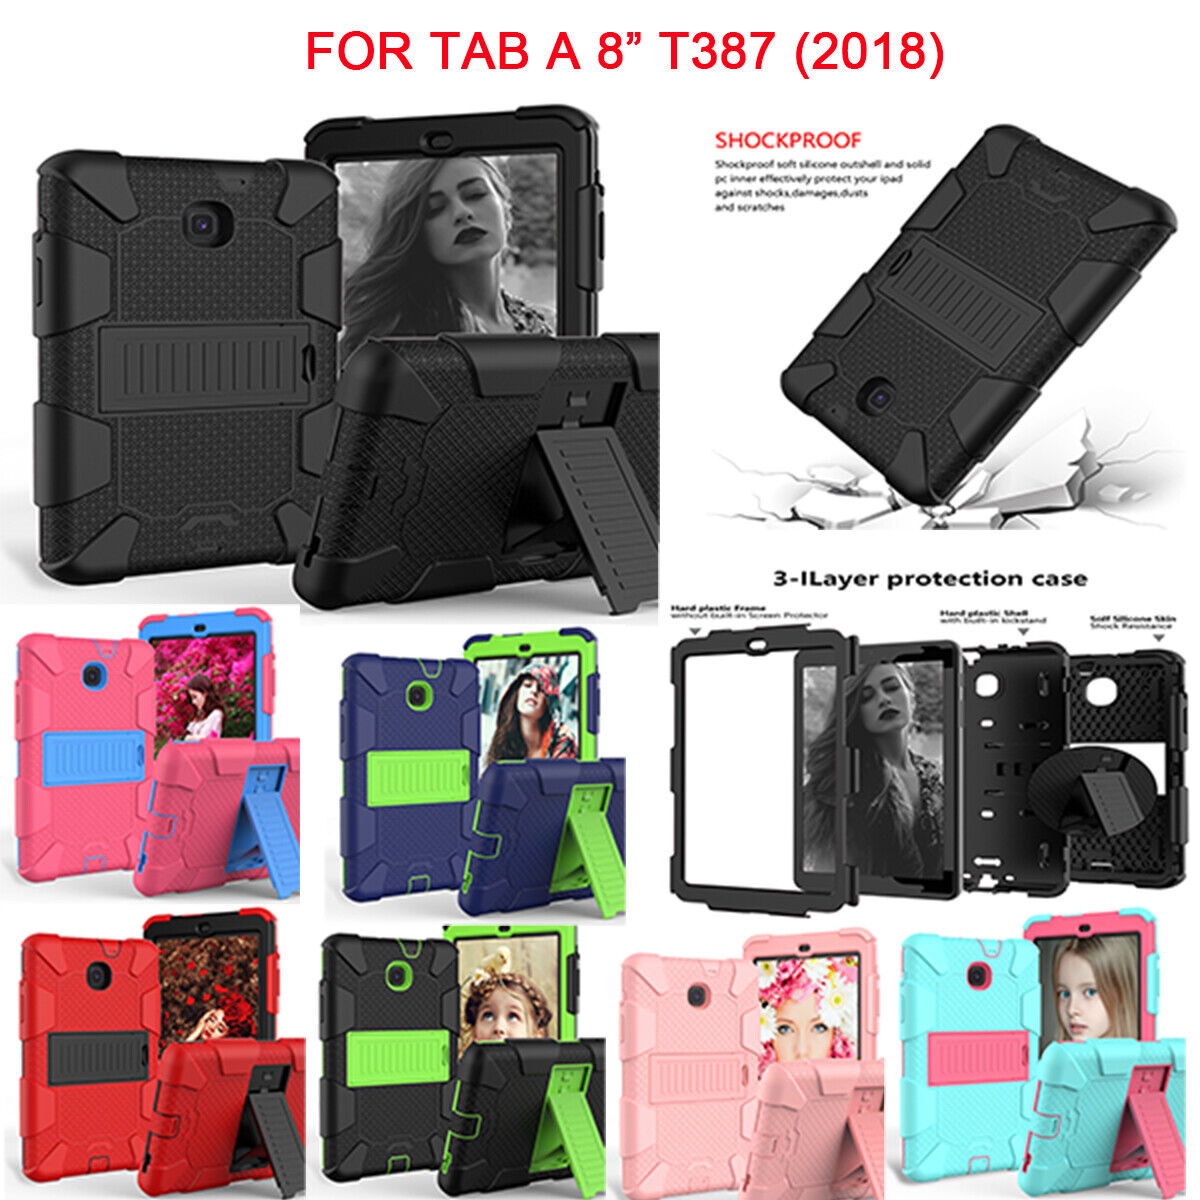 "For Samsung Galaxy Tab A 8.0"" SM-T387 2018 Shockproof Hard Case Cover Rugged Cases, Covers, Keyboard Folios"